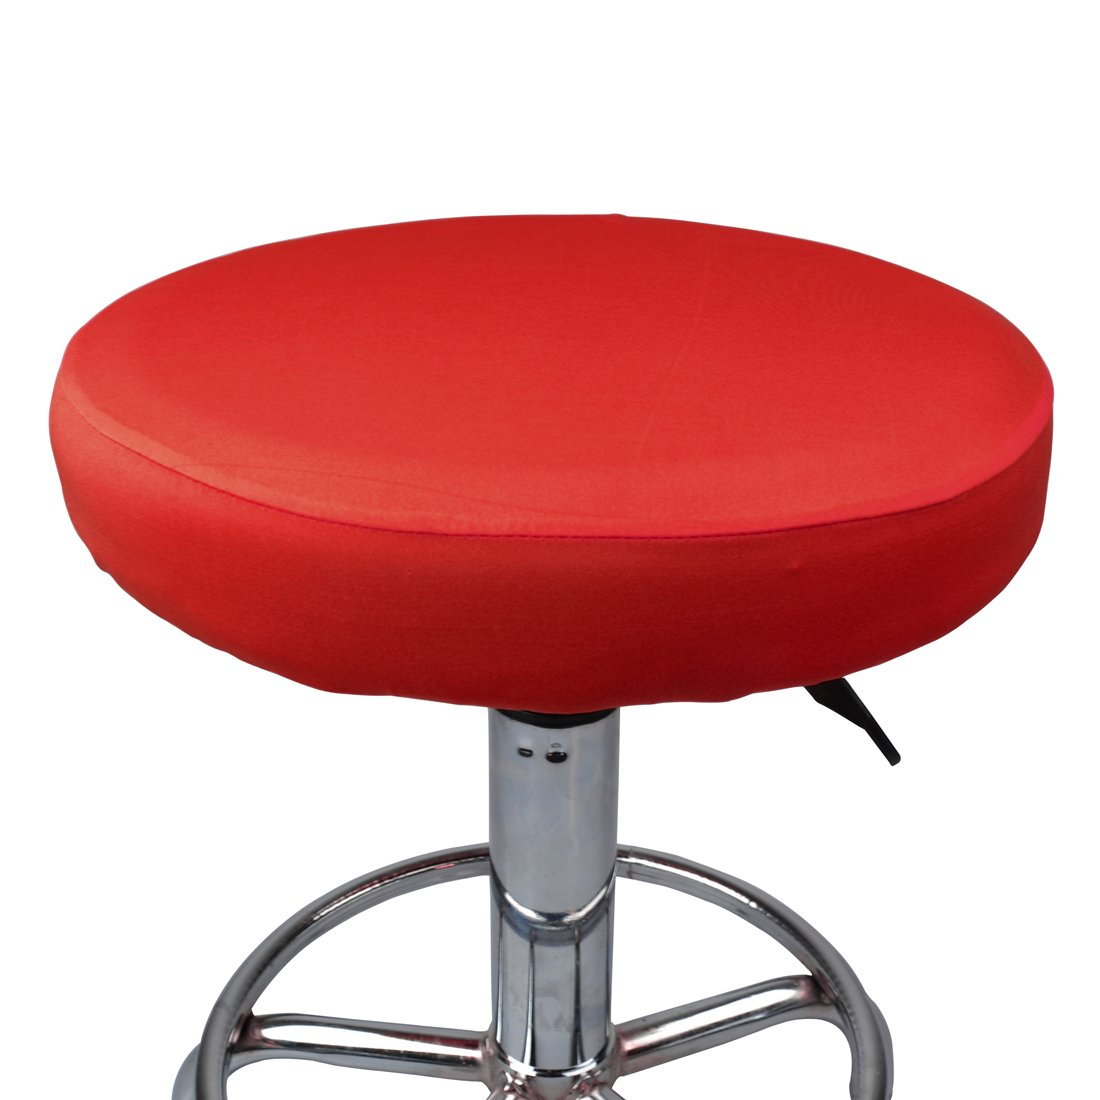 Pinji Stool Cover Round Chair Slipcover Soft Stretchable Barstool Cushion Elastic Chair Protector